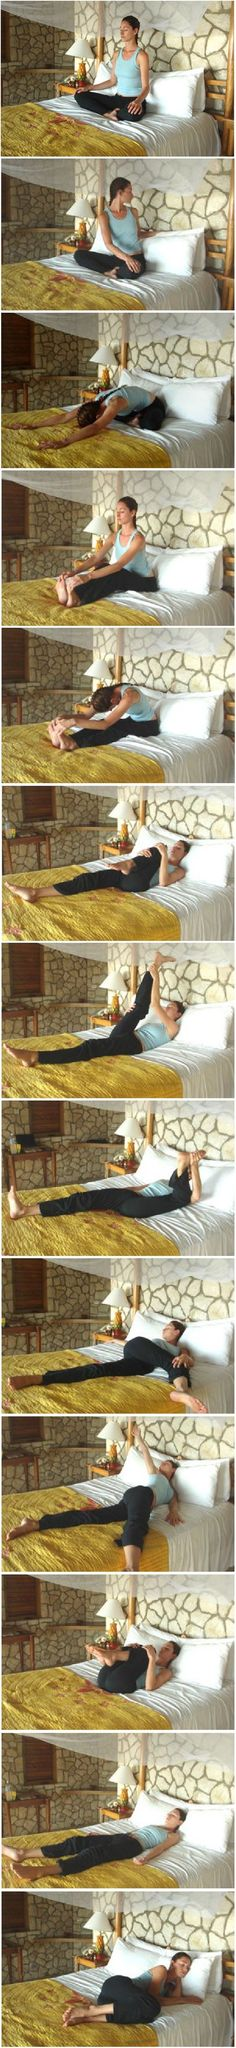 Bedtime Yoga by women's healthmag: Need help sleeping? This may be just what you need.  #Yoga #Bedtime #Sleep